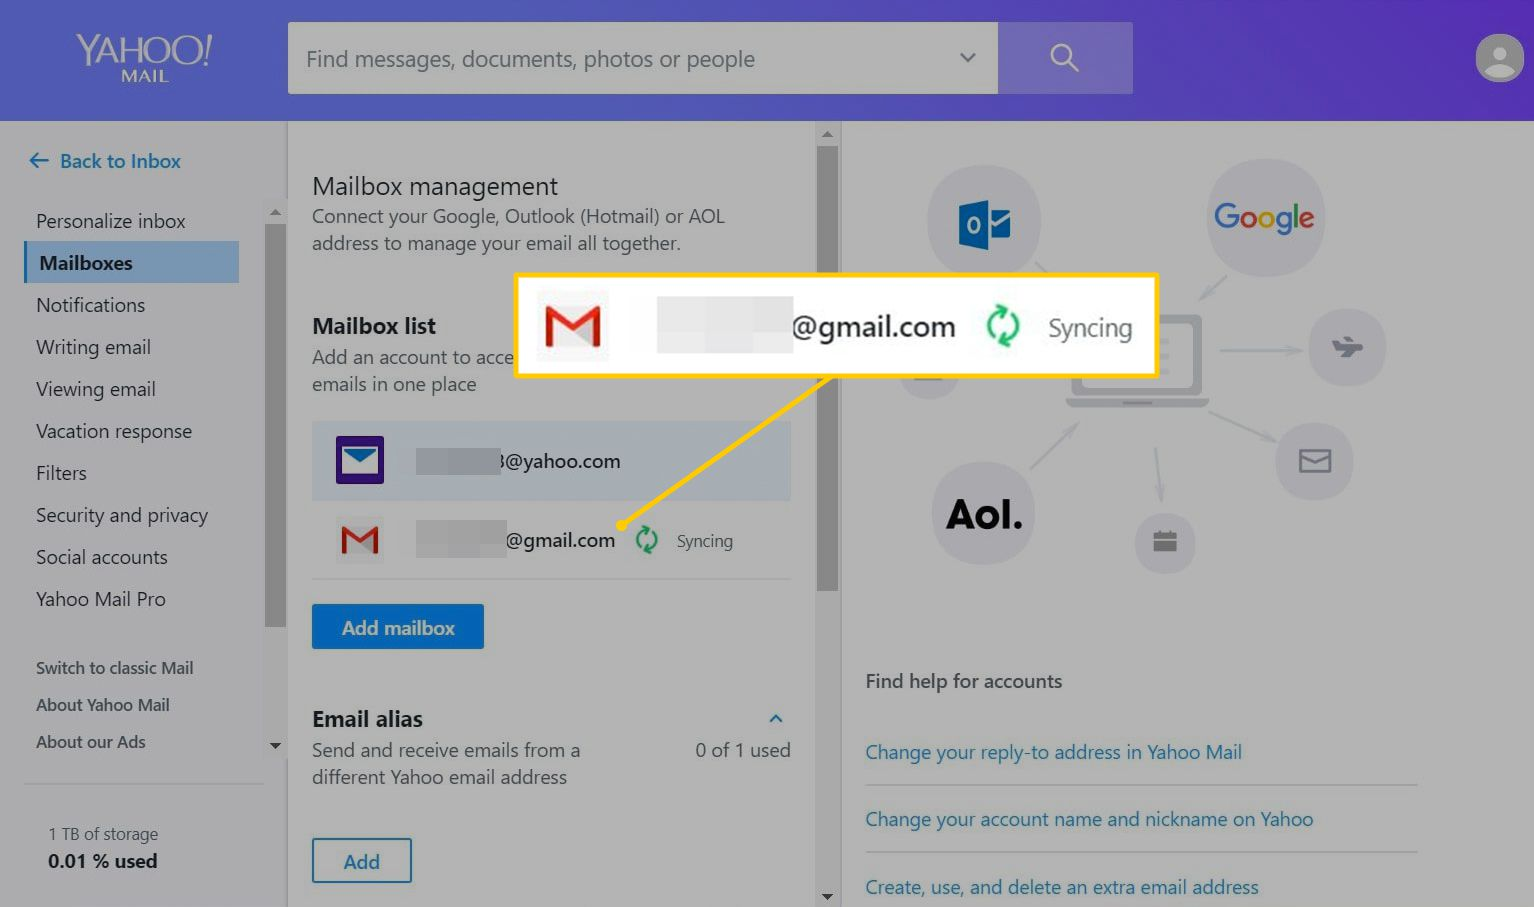 How to Specify a Reply-To Address in Yahoo Mail